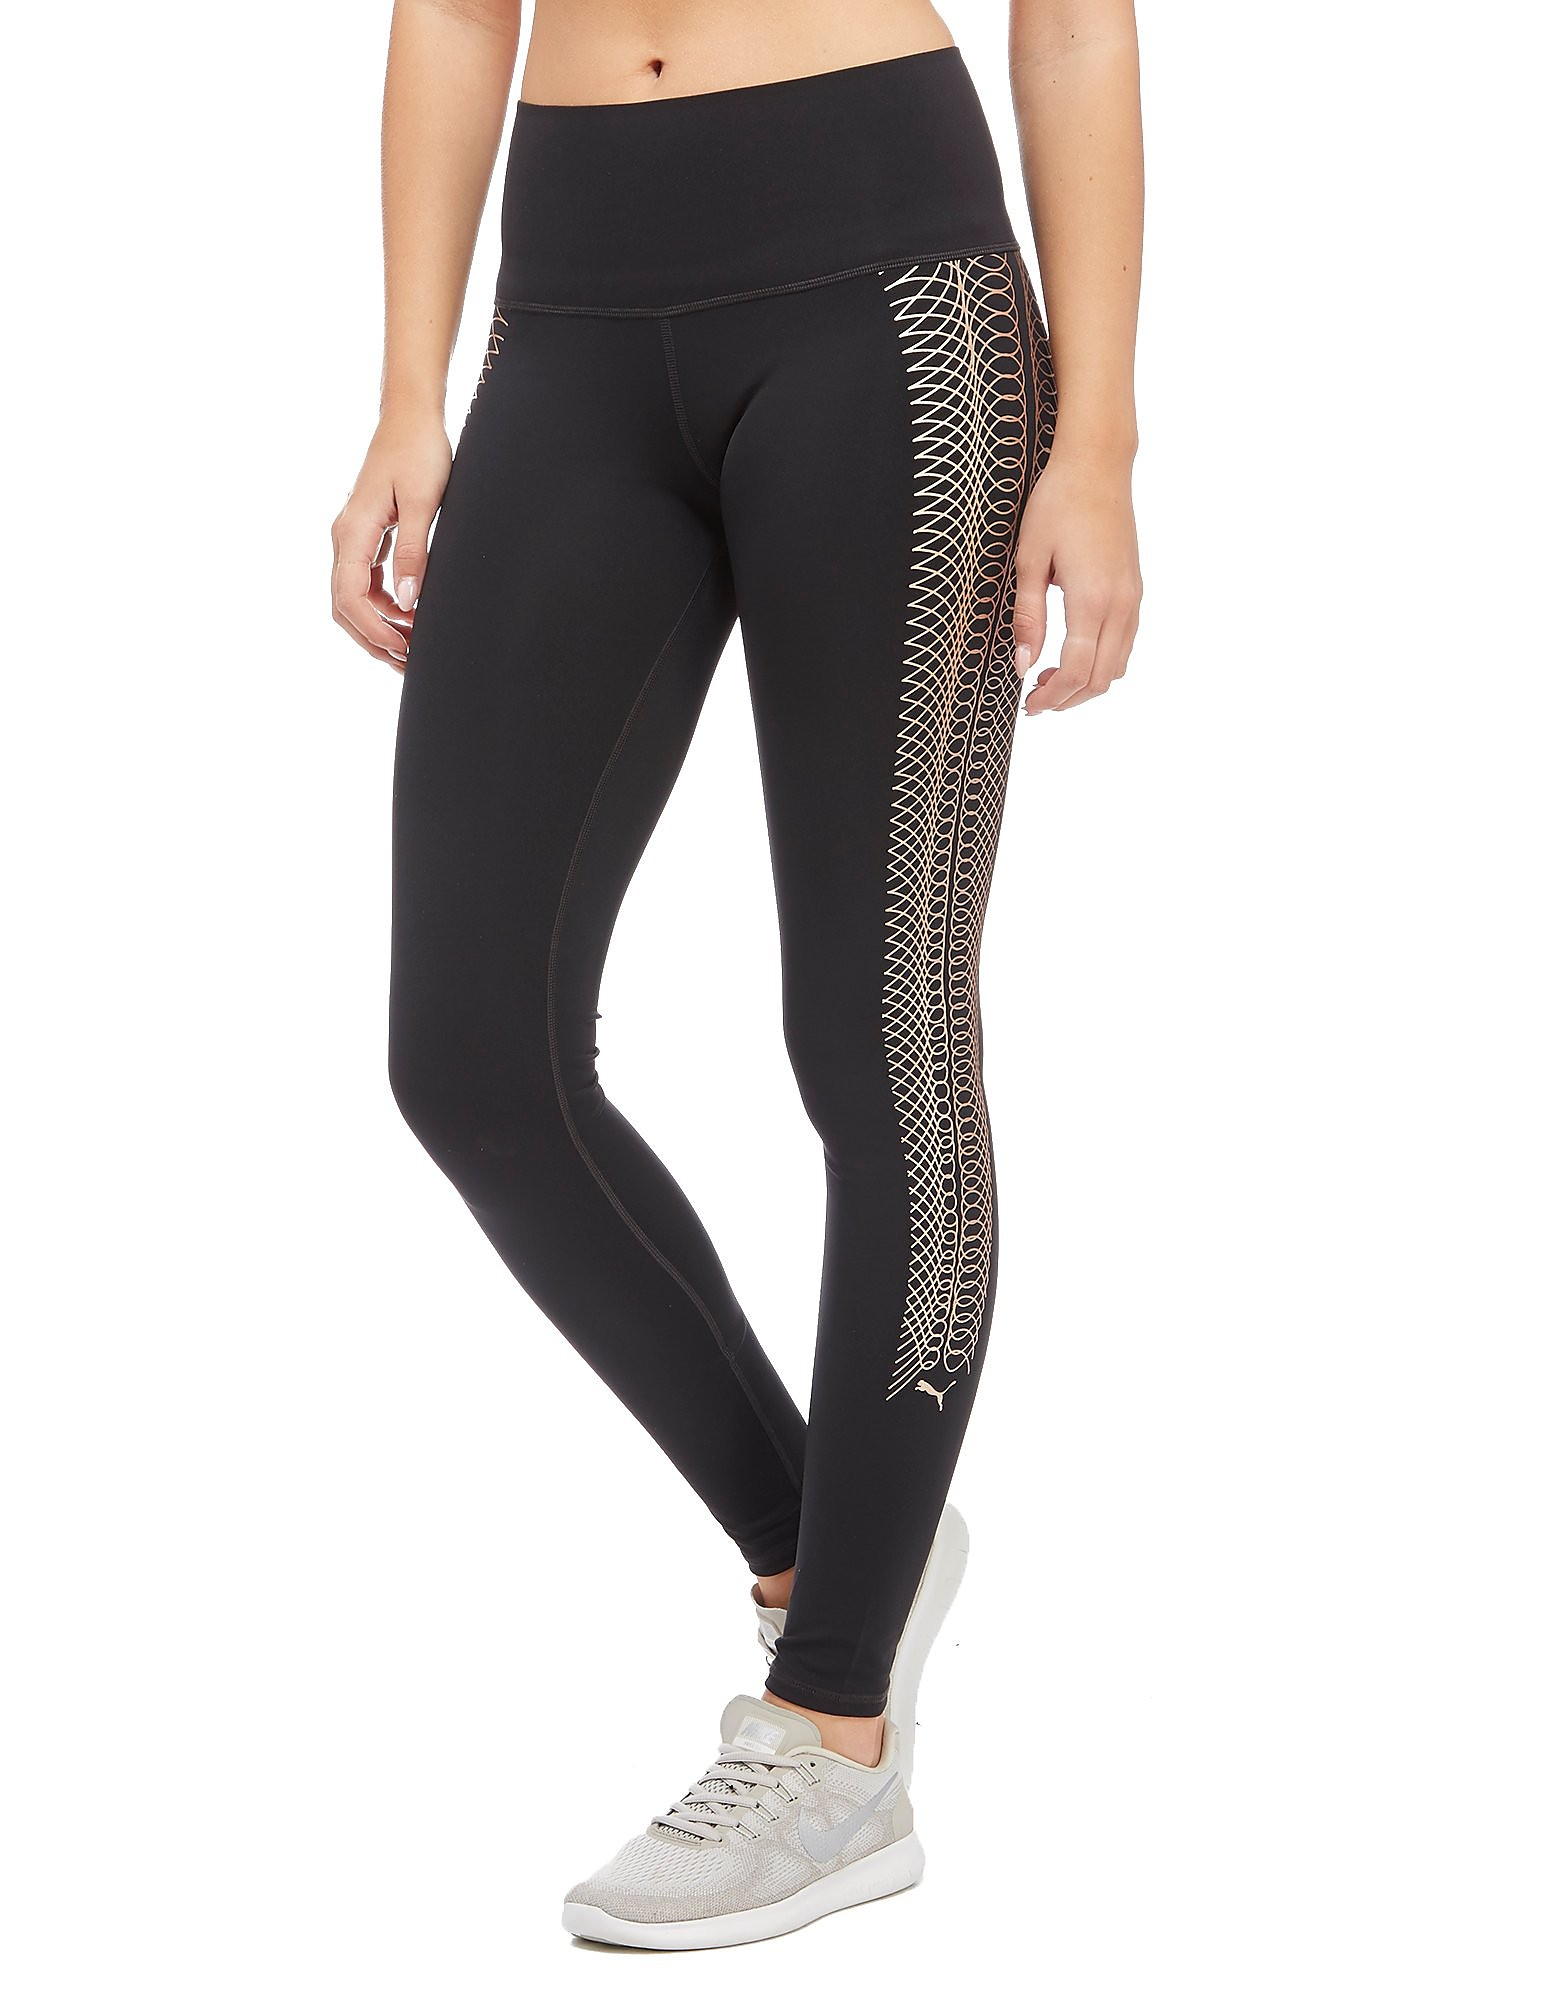 PUMA Rope Collection Metallic Tights